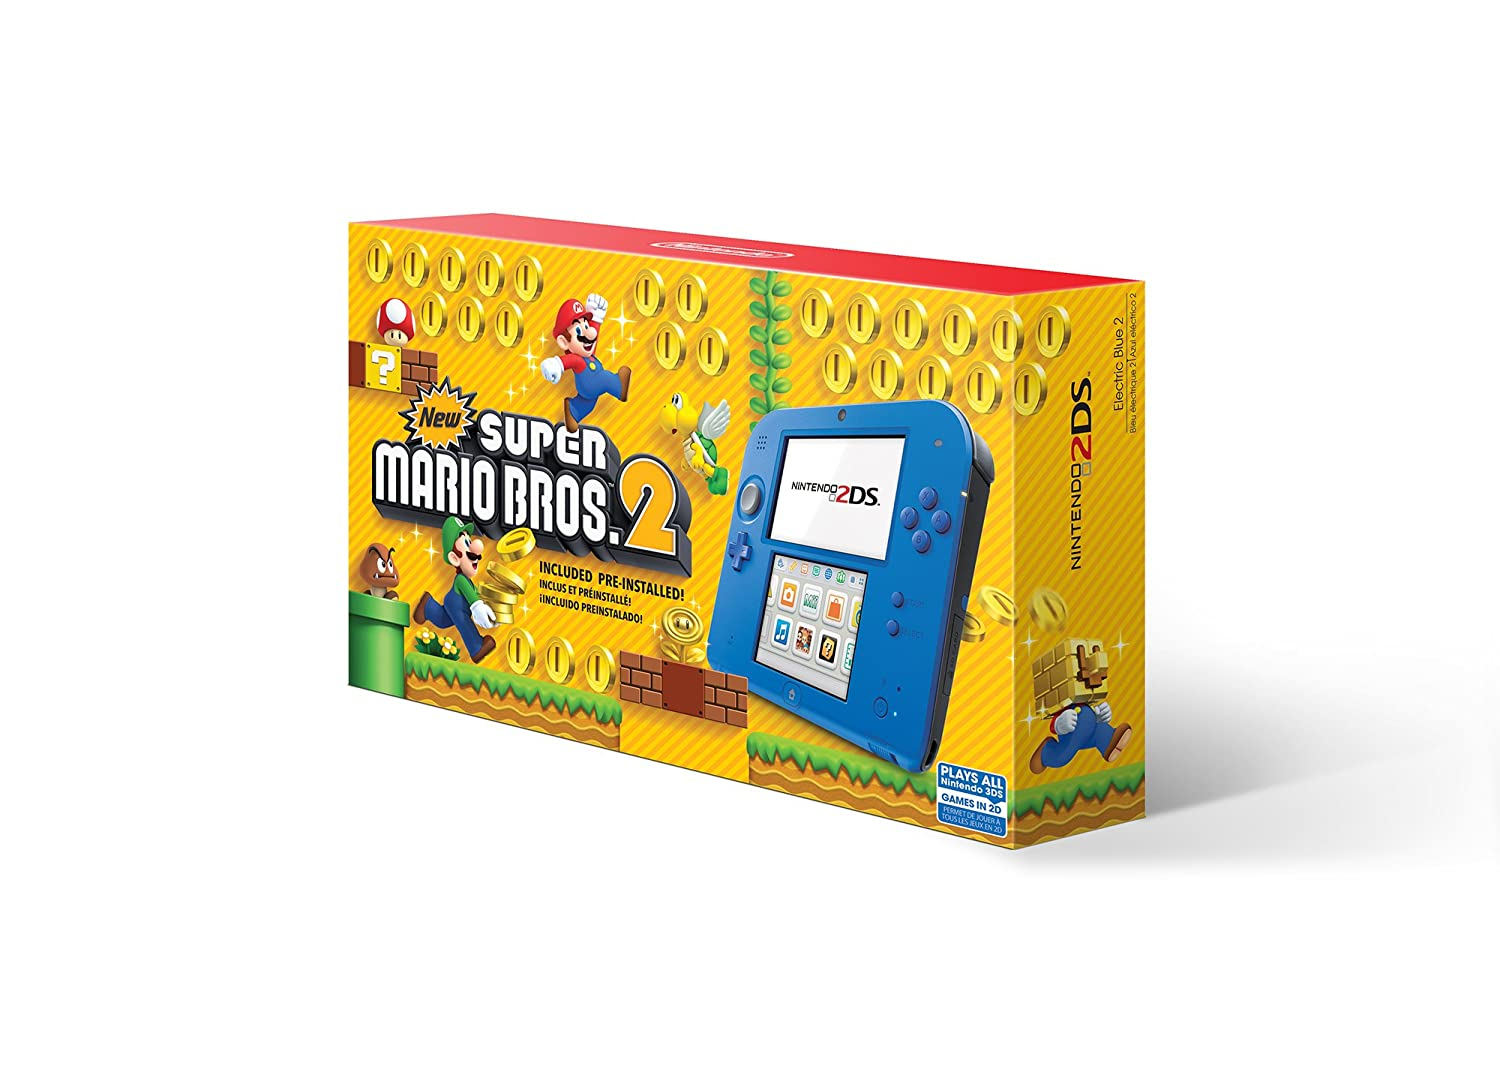 Nintendo 2DS – Electric Blue 2 with New Super Mario Bros. 2 Game Pre-Installed – 2DS